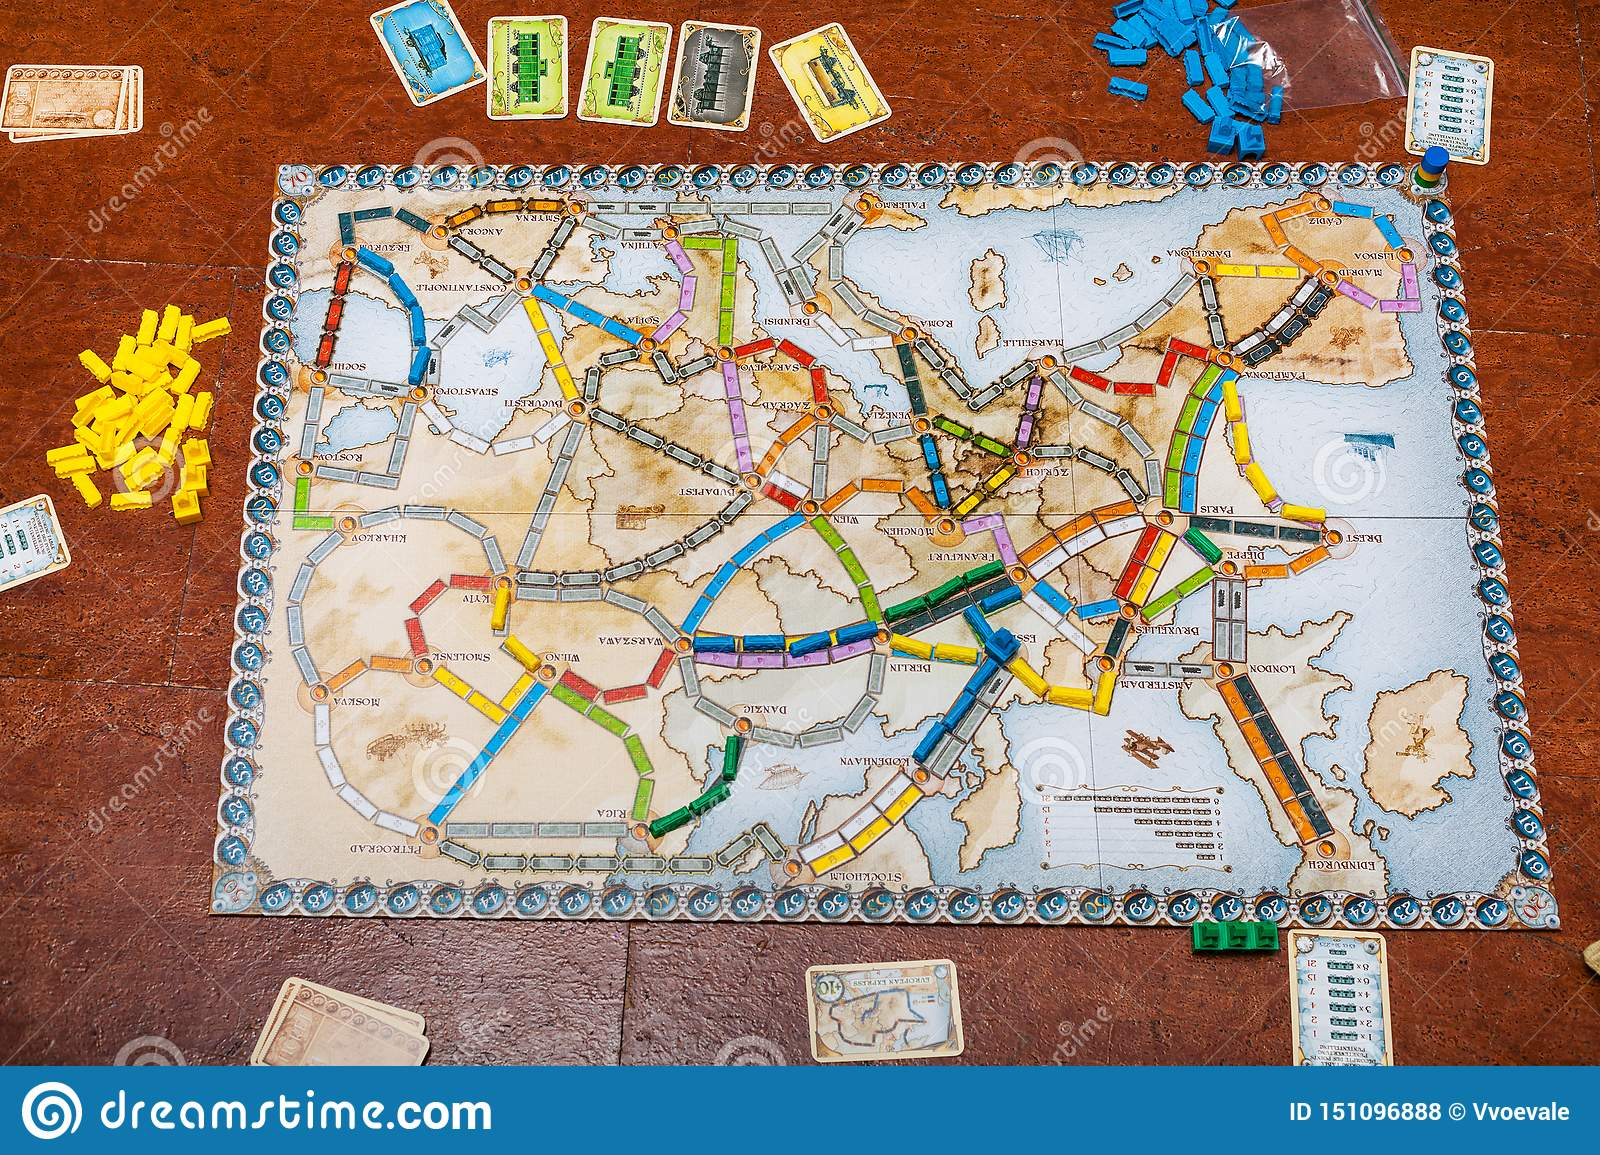 Playfield of Ticket to Ride: Europe board game